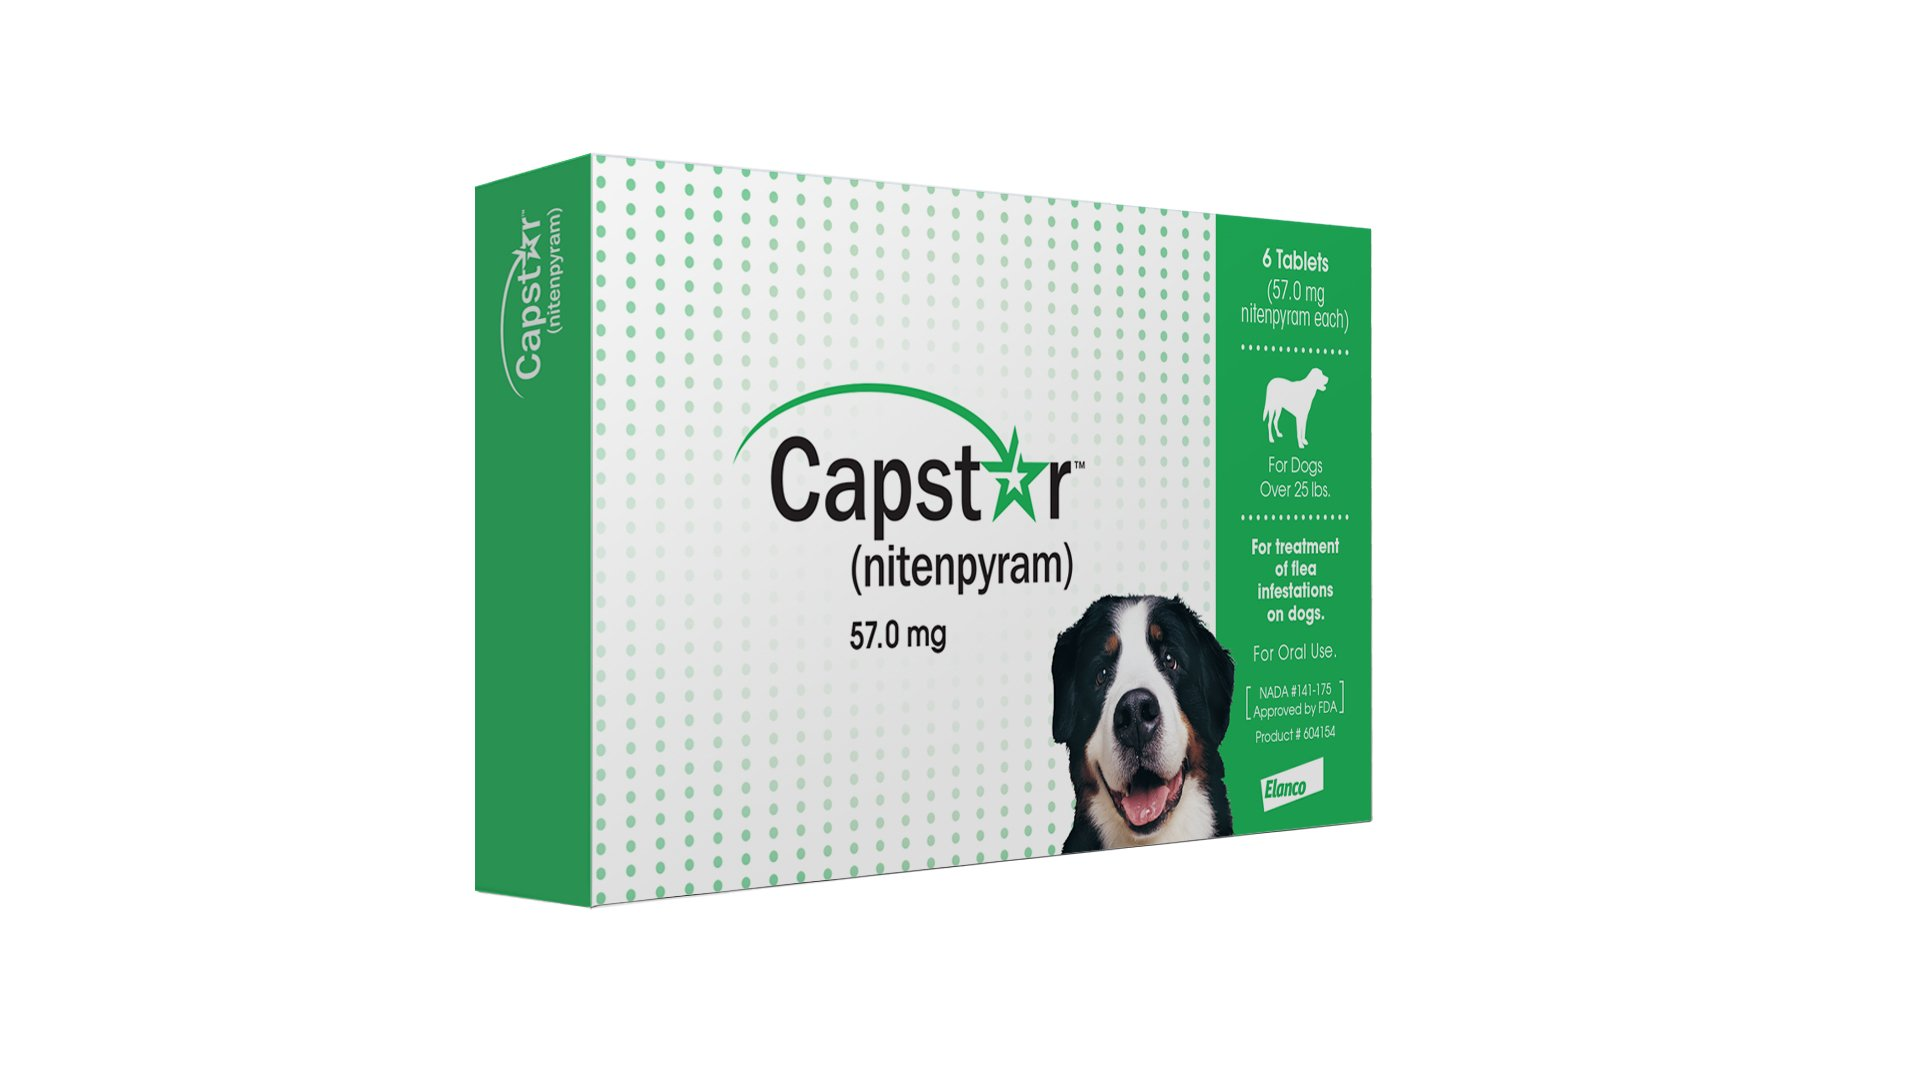 Elanco-Animal-Health-Capstar-Green-Box-Flea-Oral-Treatment-for-Large-Dogs-Over-25lbs-6-PillTablets